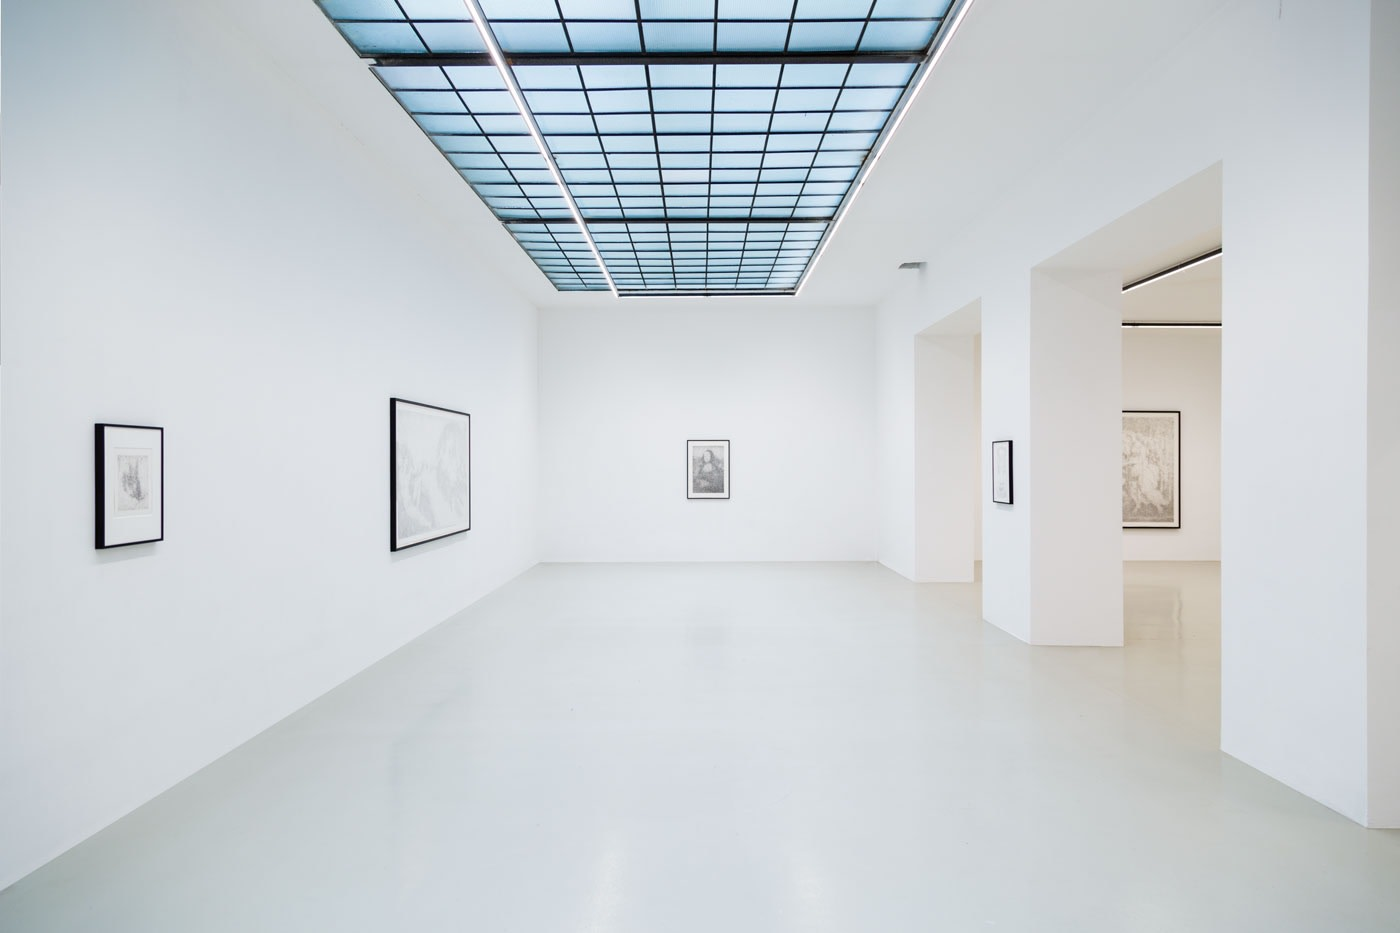 Maximilian Prüfer | TIER 11 April - 18 May 2019